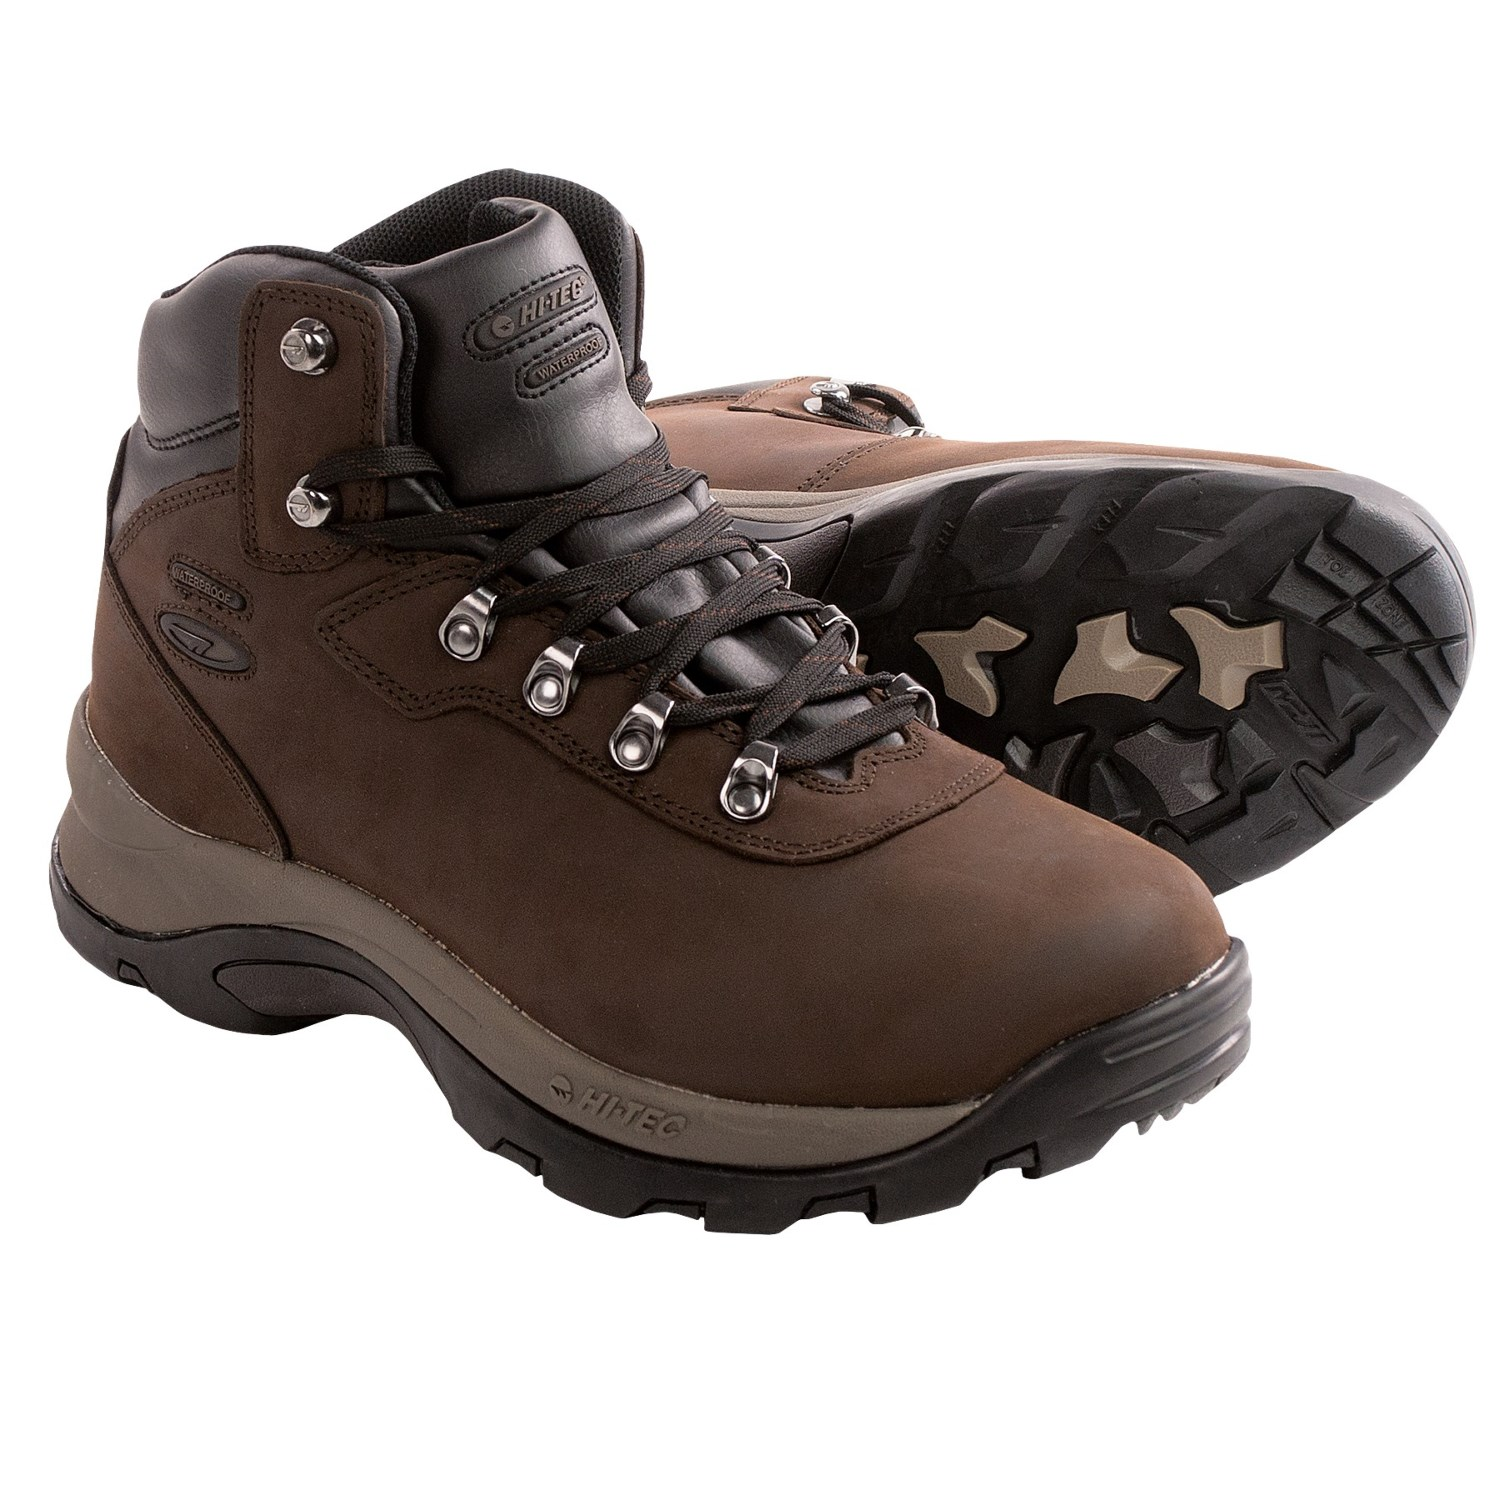 hi tec altitude iv hiking boots waterproof for in